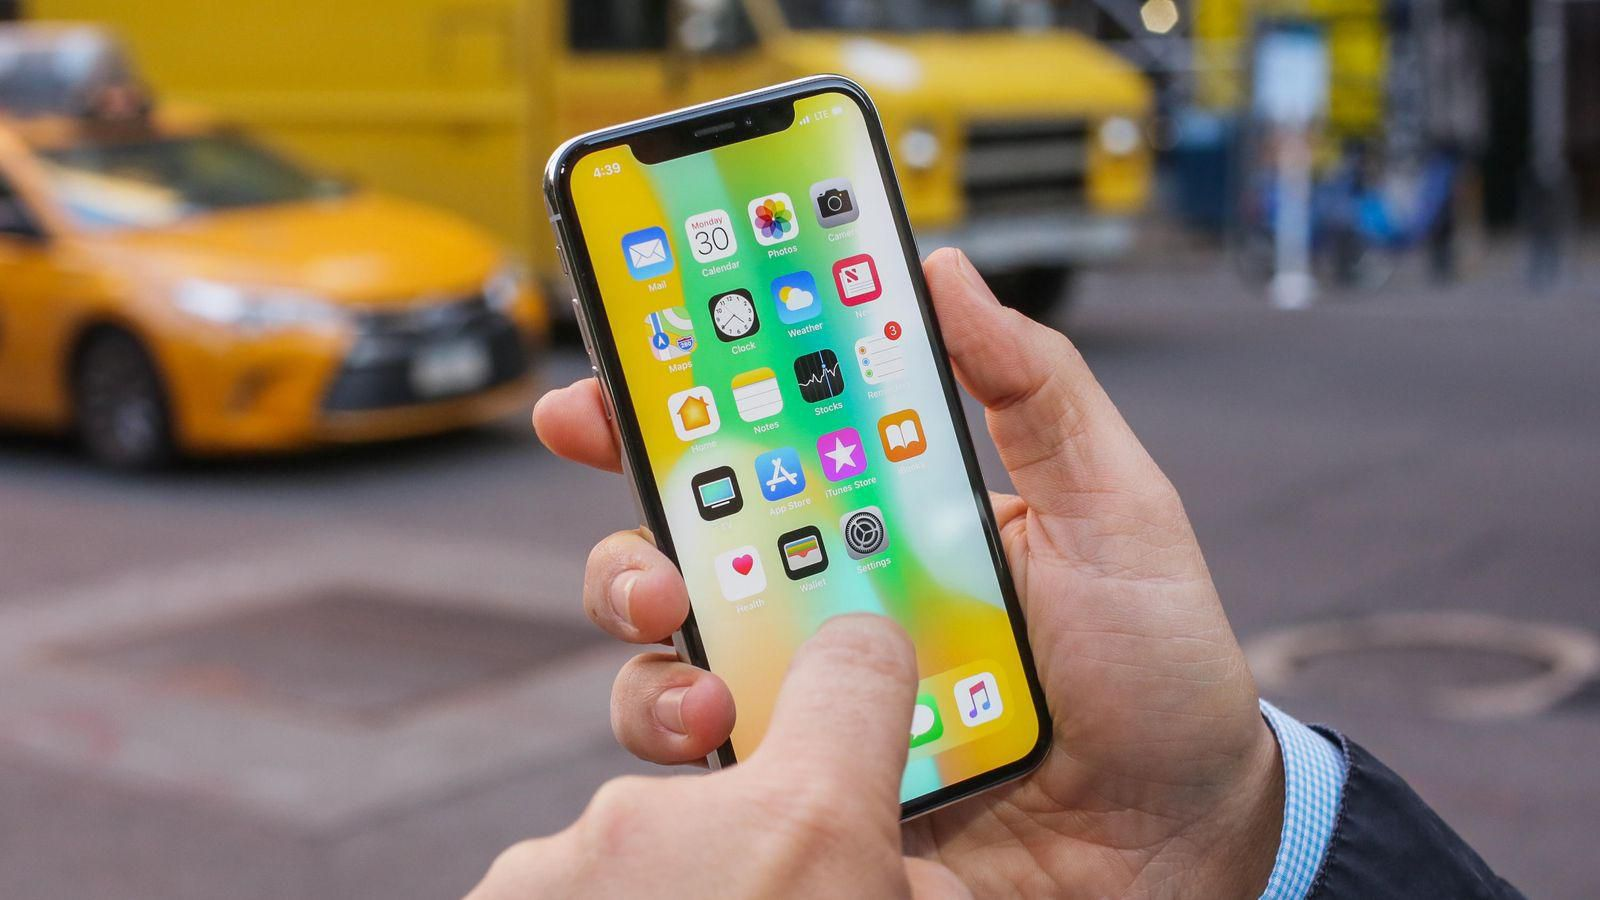 Apple has again reduced the delivery time of the iPhone X in Russia